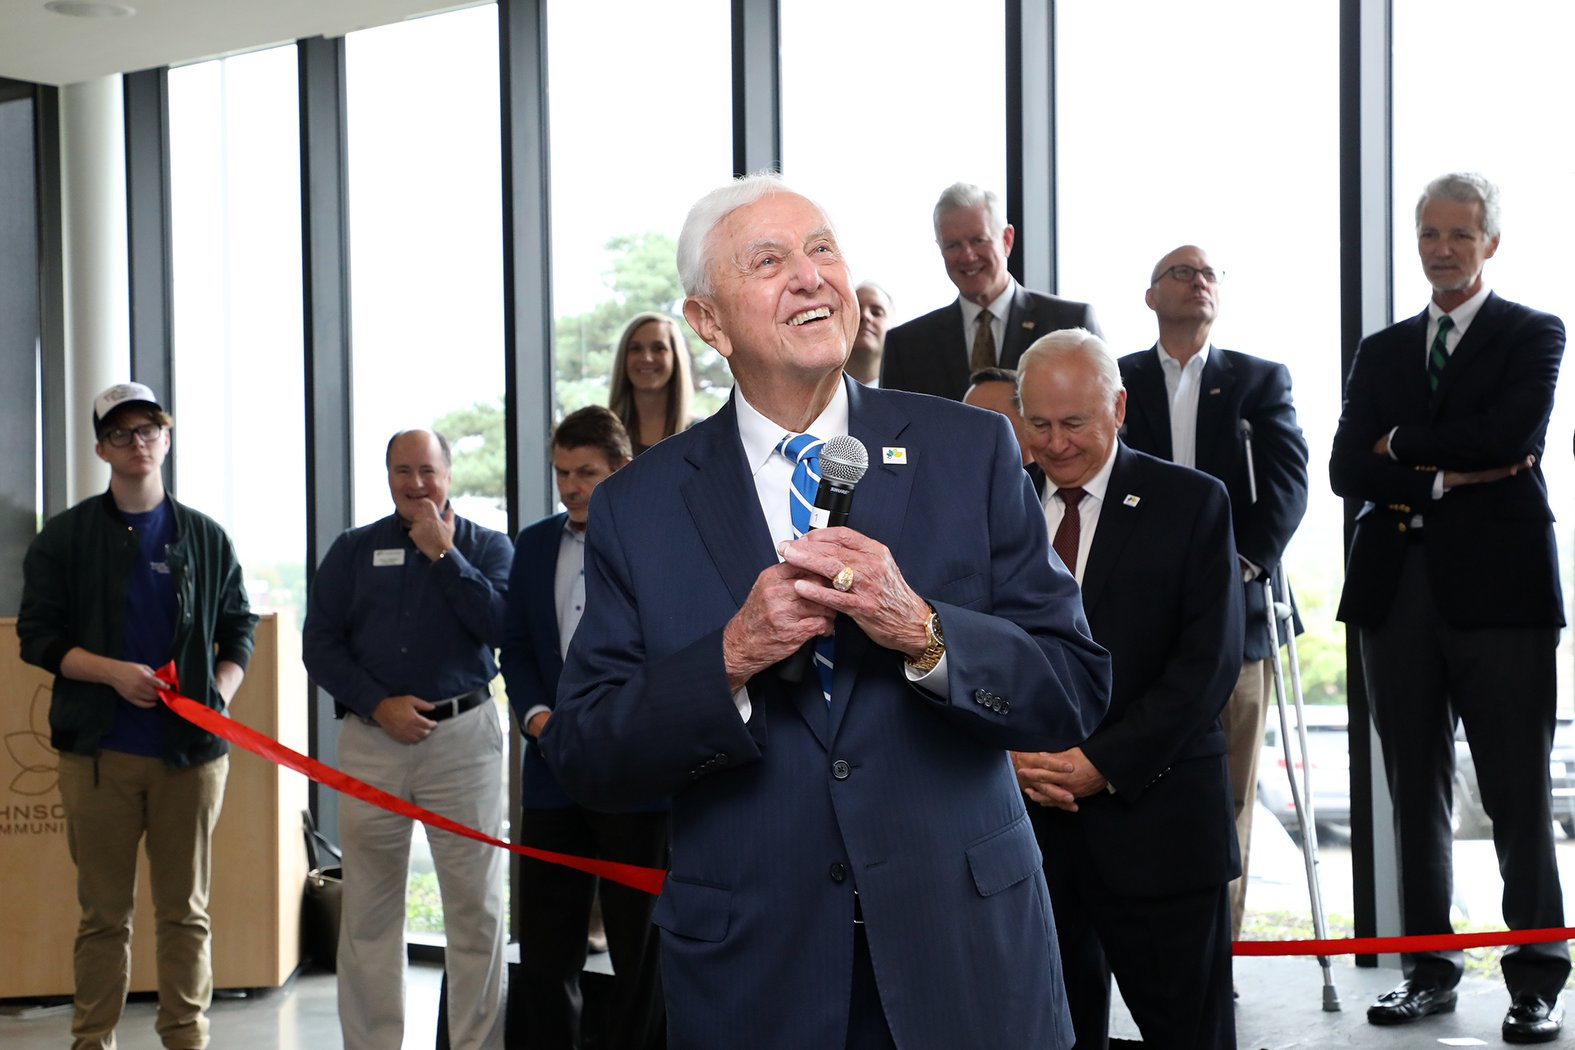 Hugh L. Libby Career and Technical Education Center Opens